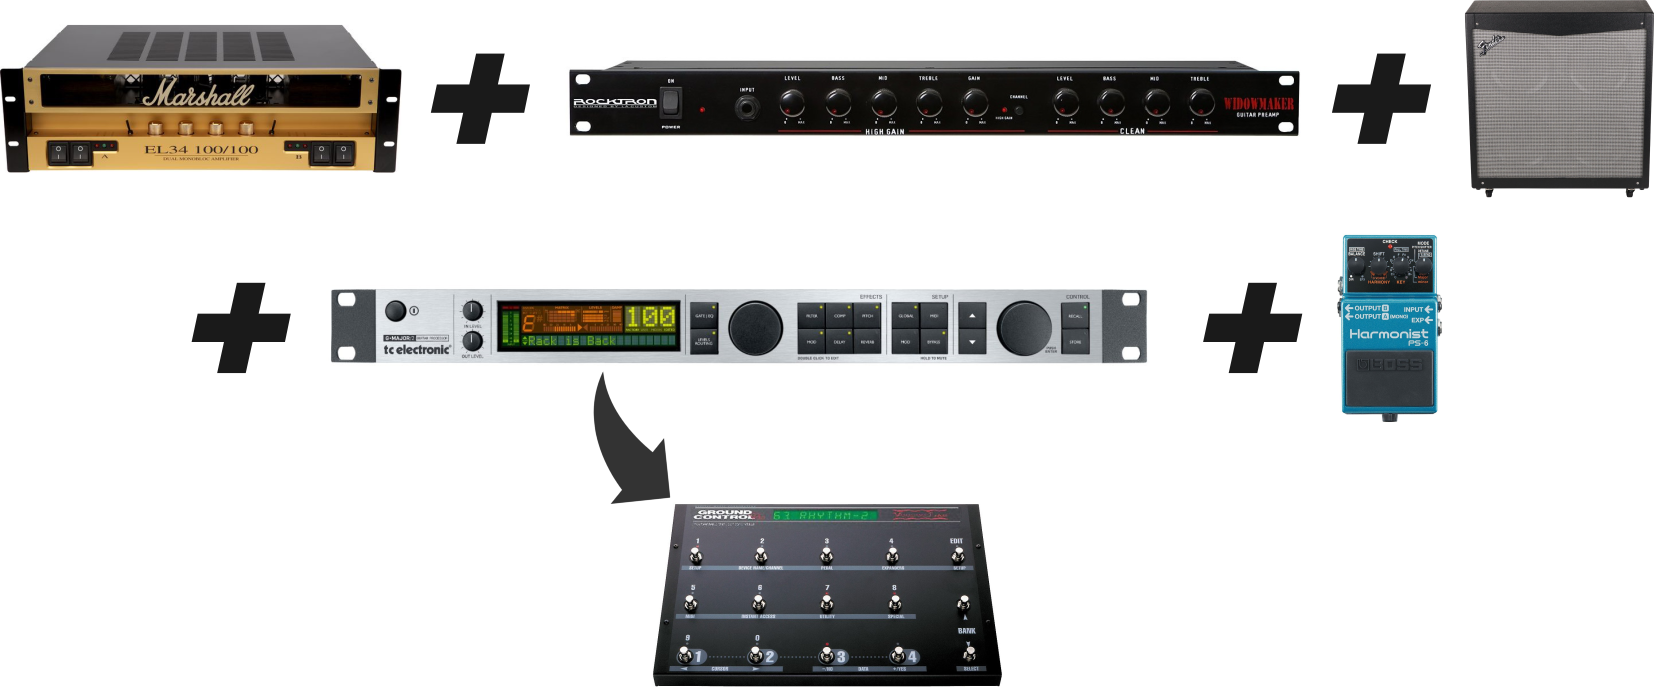 how to setup a guitar rack system with the proper cases guitar chalkguitar rack system setup with midi foot controller